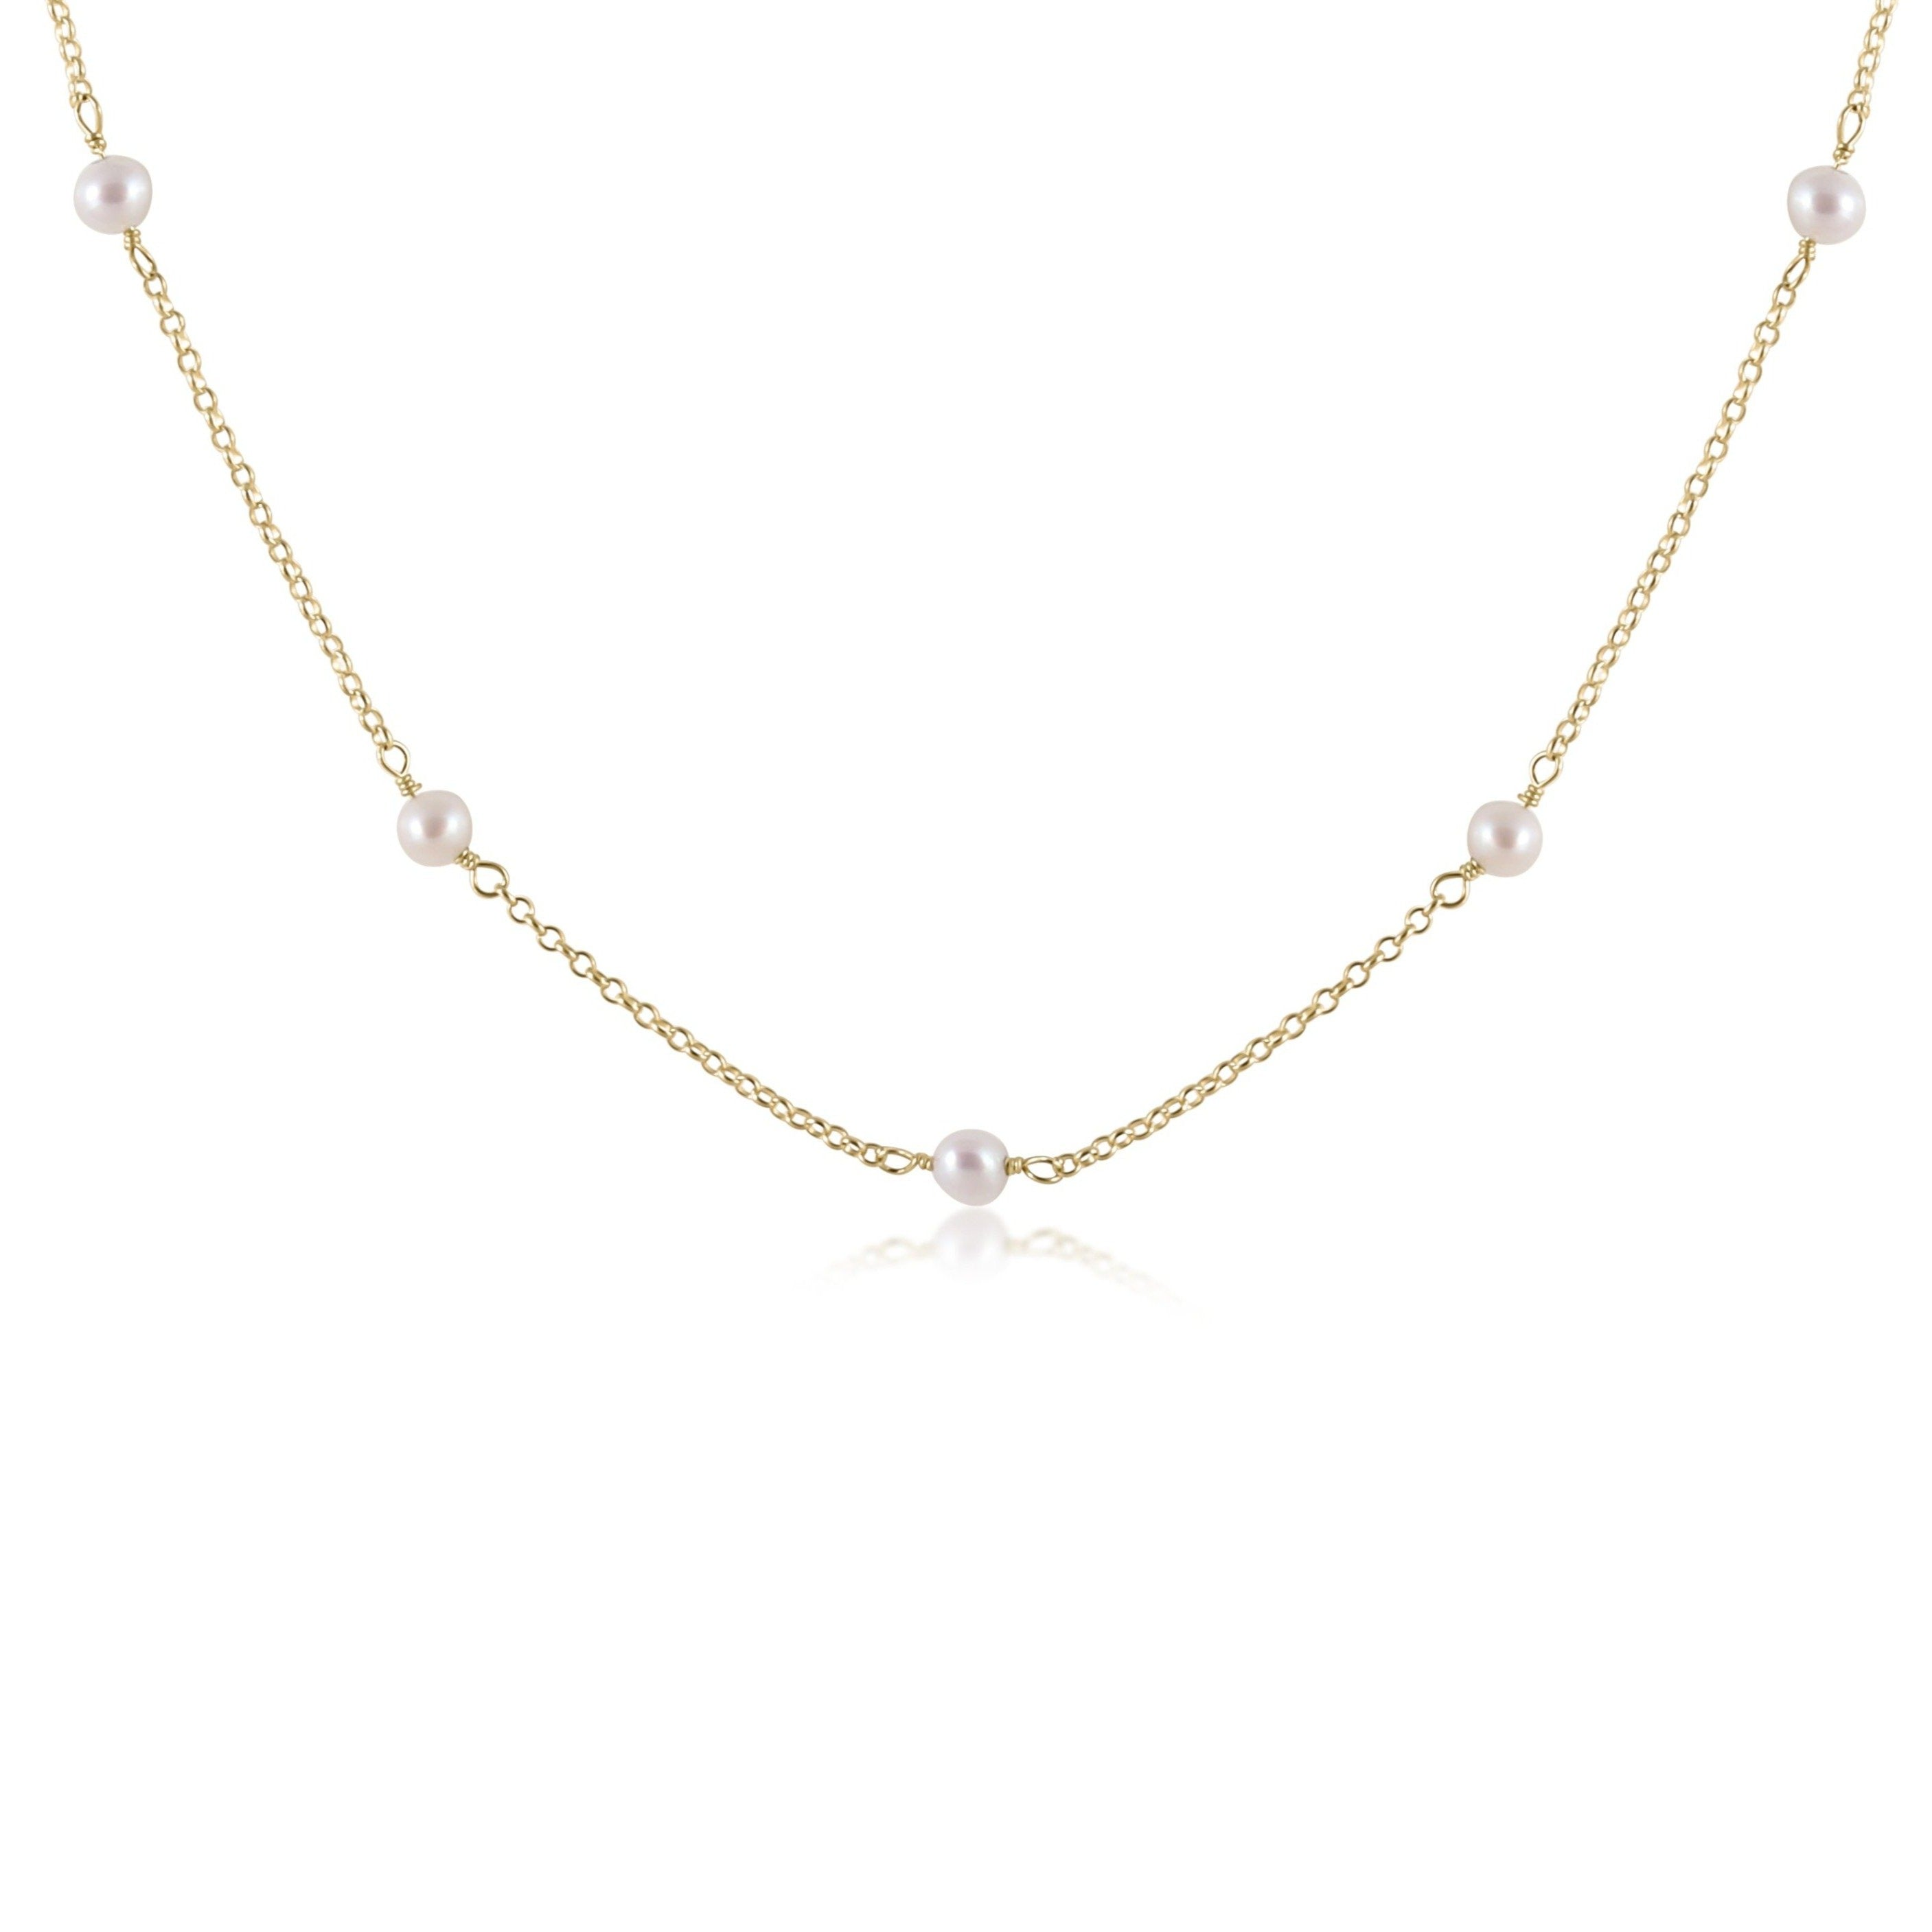 "15"" Choker Simplicity Chain Gold - 4mm Bead Pearl"